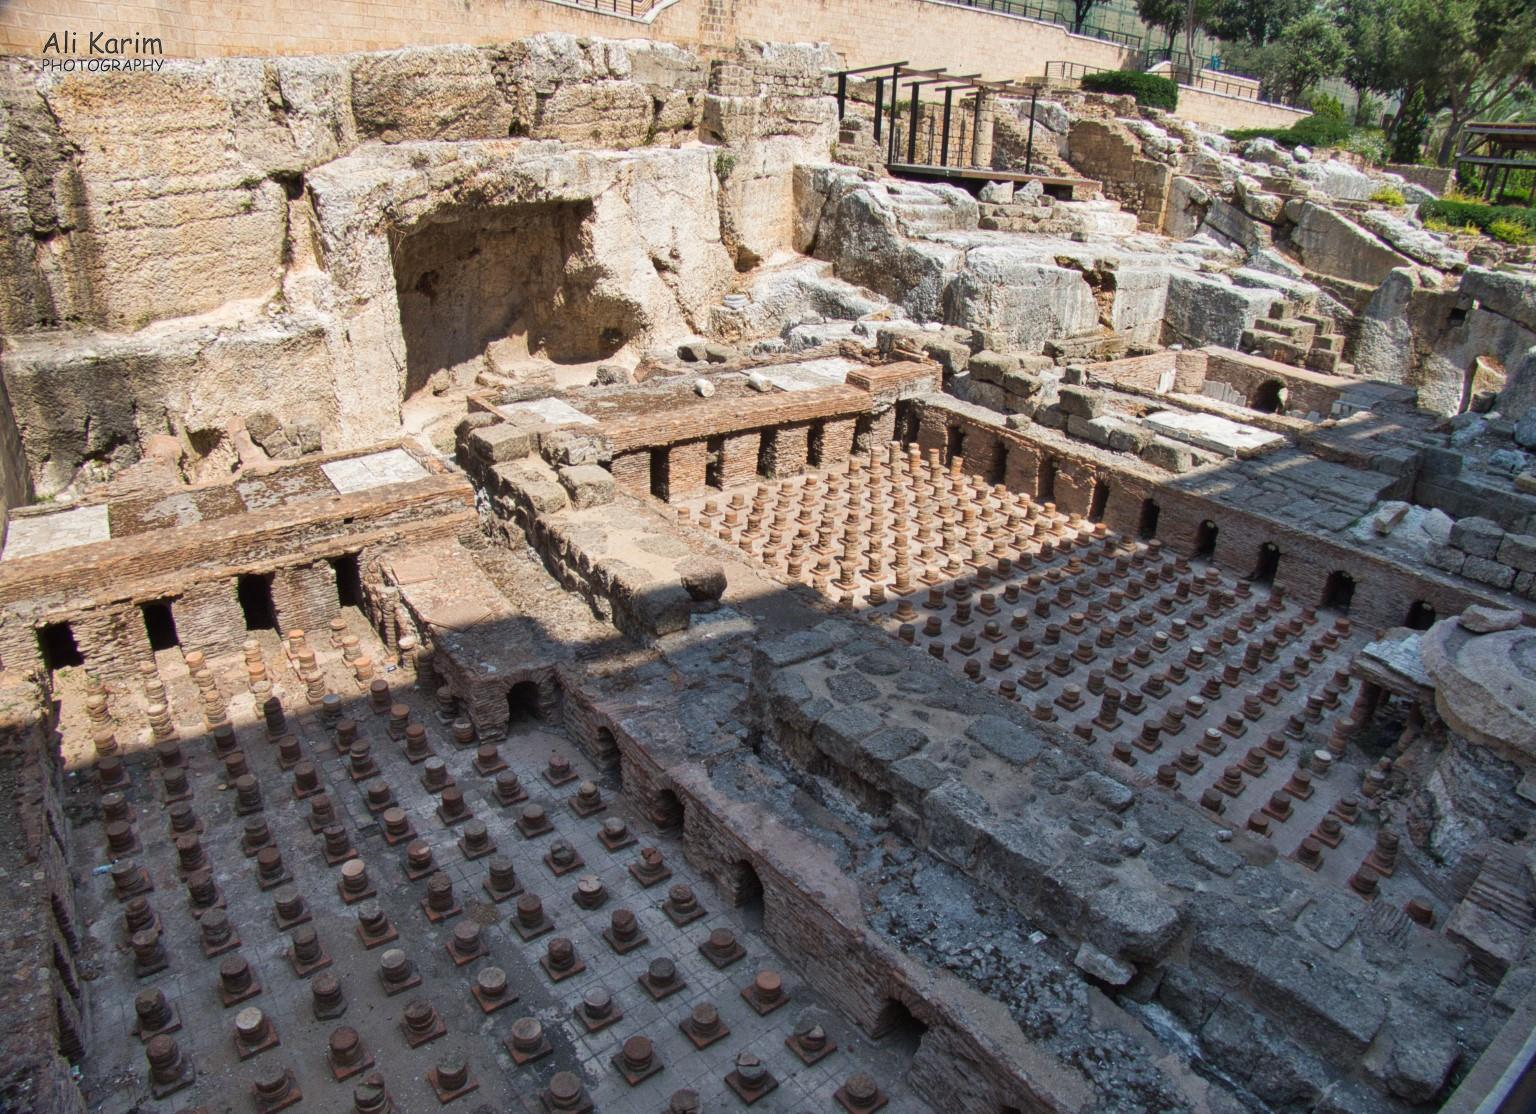 Beirut Old Roman baths; the small pillars held a raised floor under which the hot water and steam circulated to provide hot water and steam for the baths